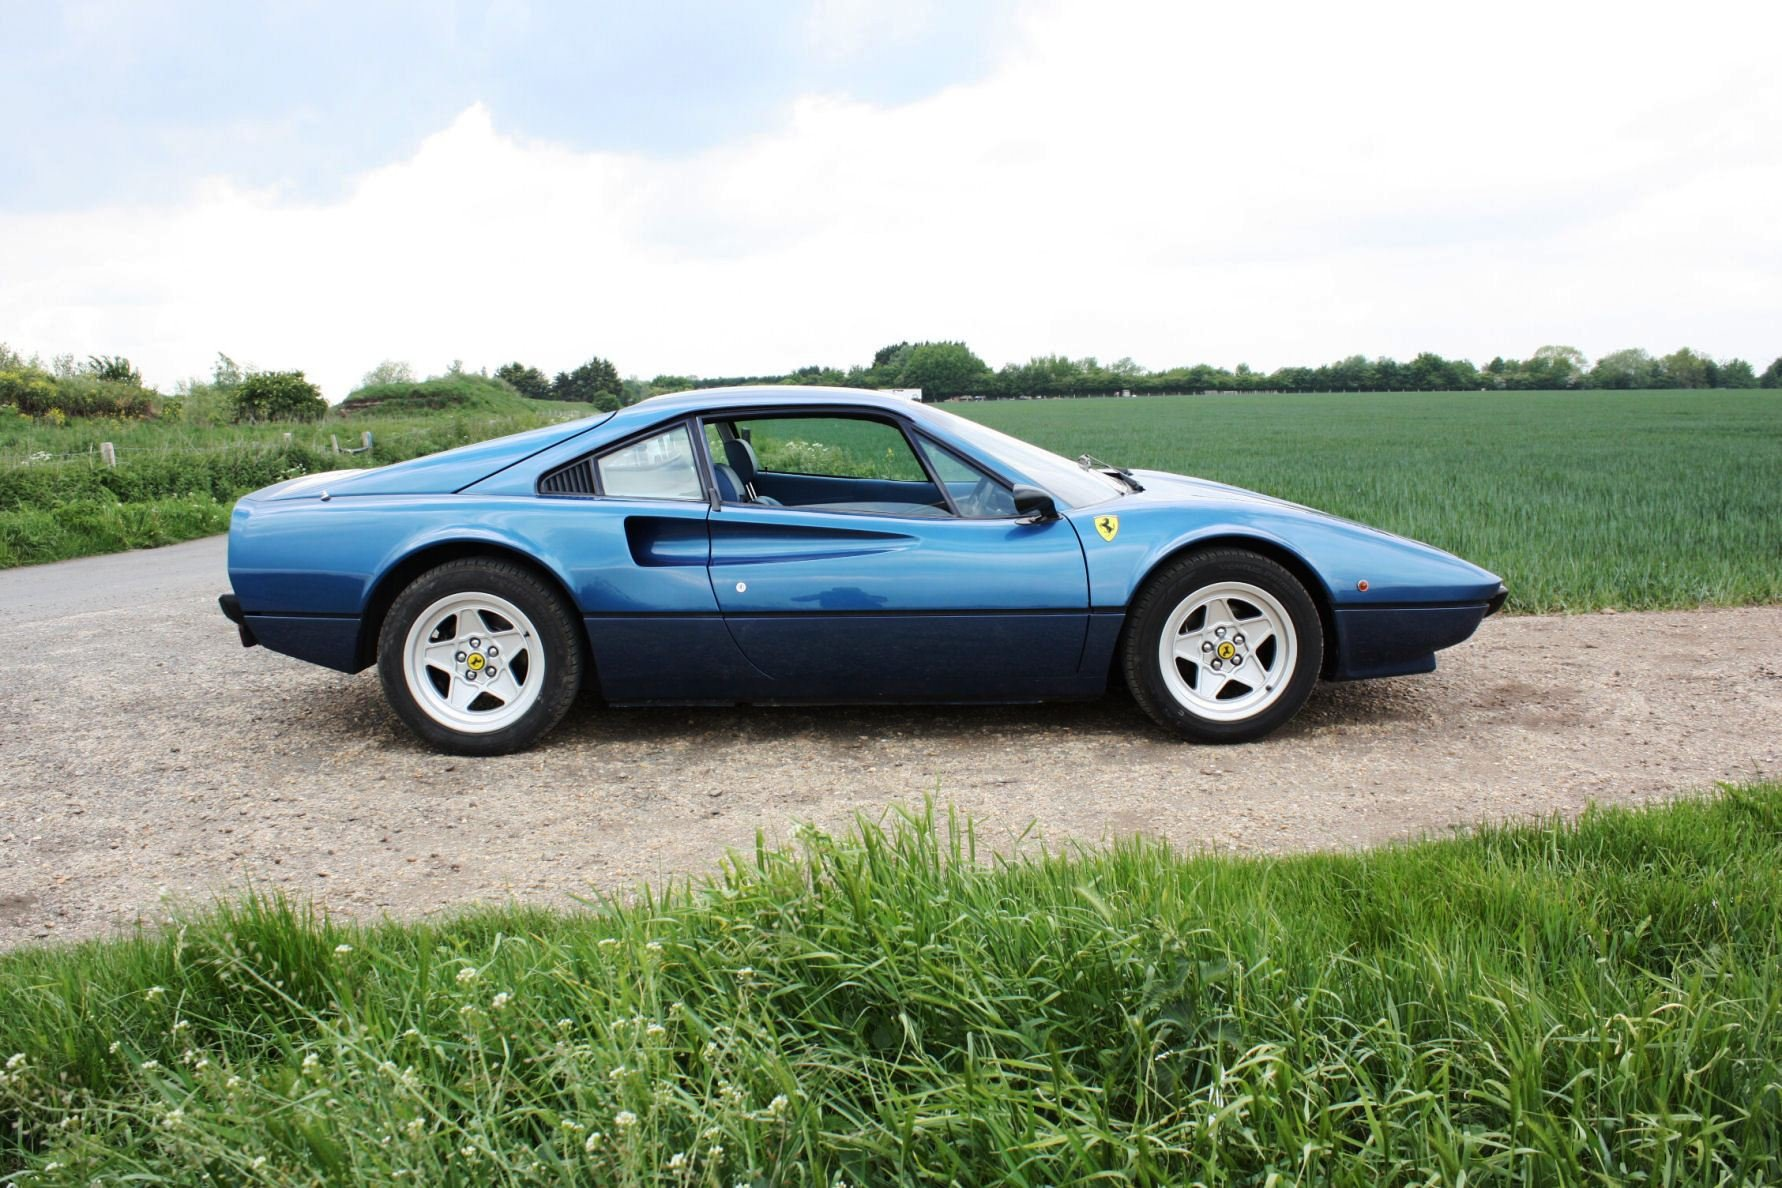 FERRARI 308 GTBi 1981. EXCELLENT CONDITION THROUGHOUT For Sale (picture 4 of 6)